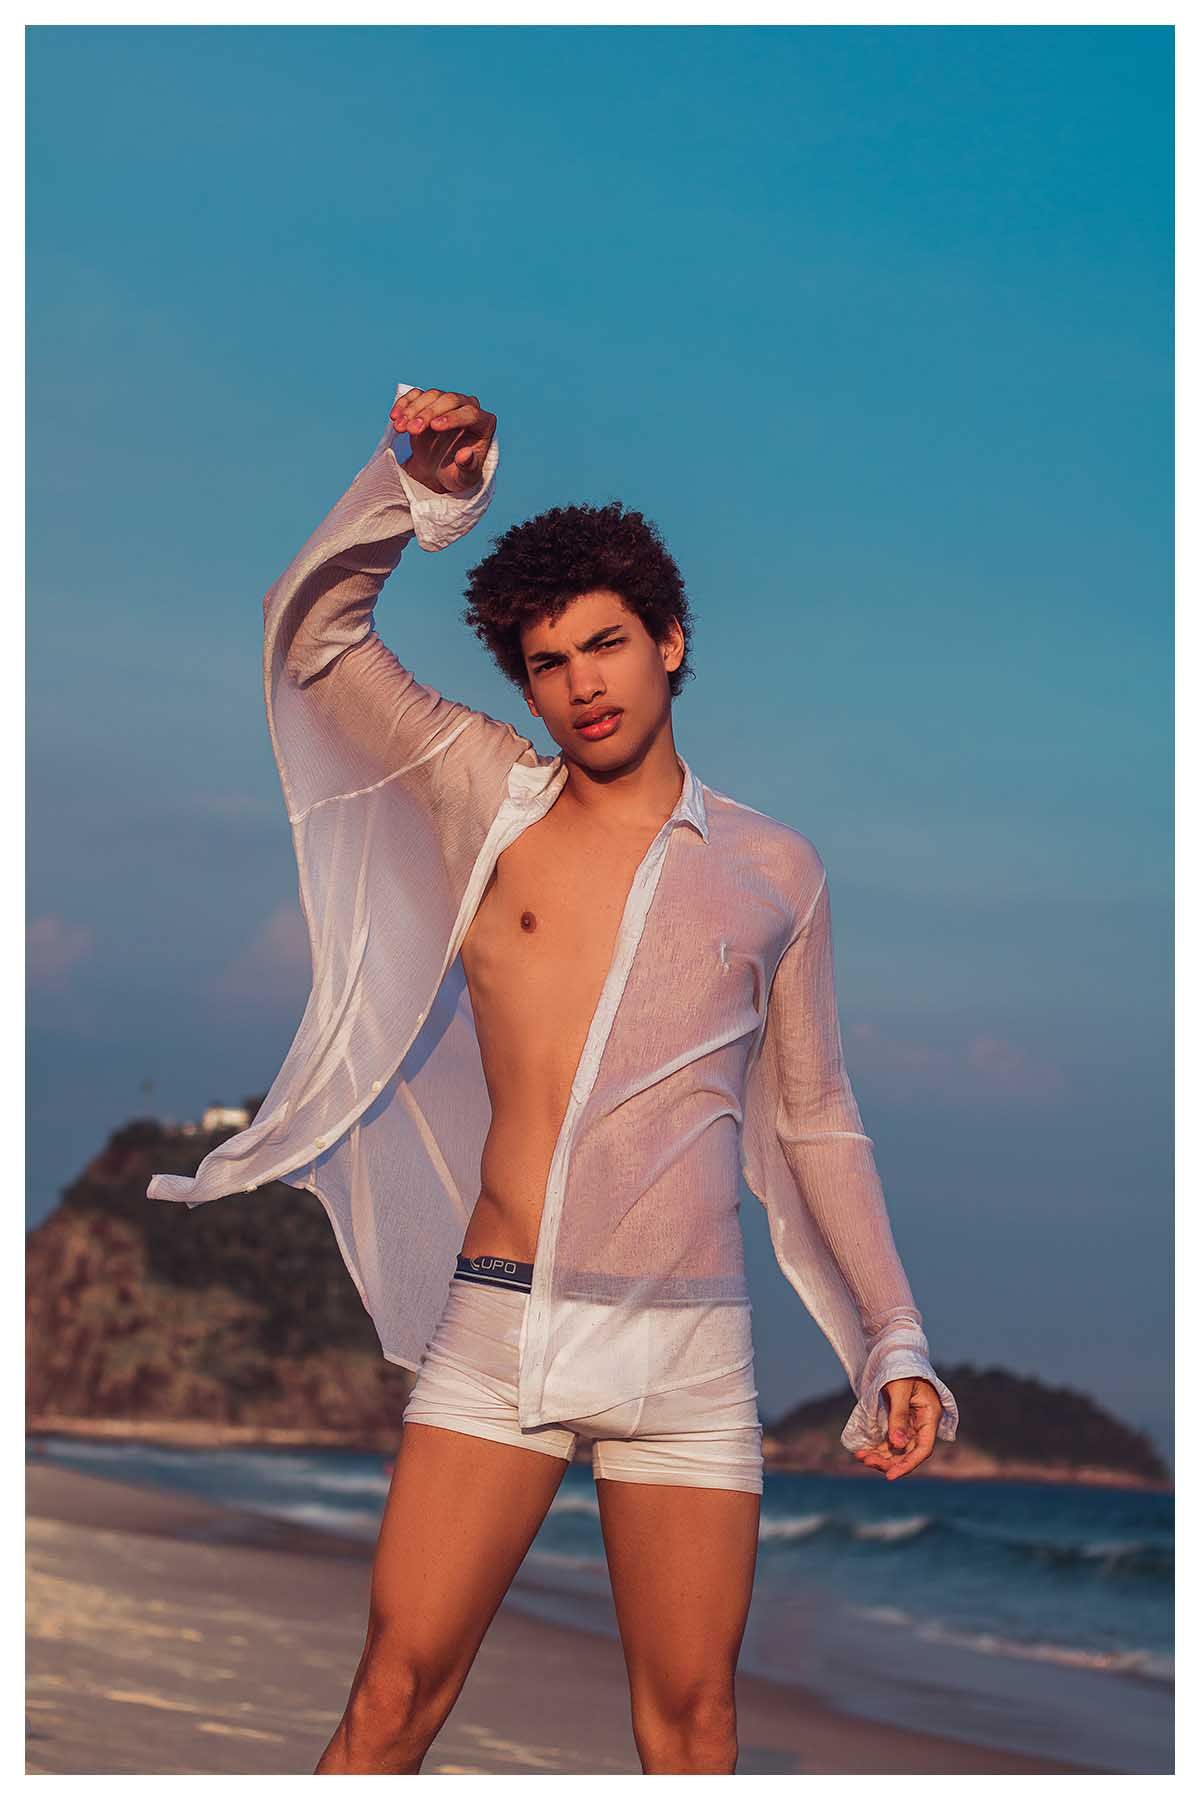 Vinicius Albuquerque by Rodrigo Almeida for Brazilian Male Model